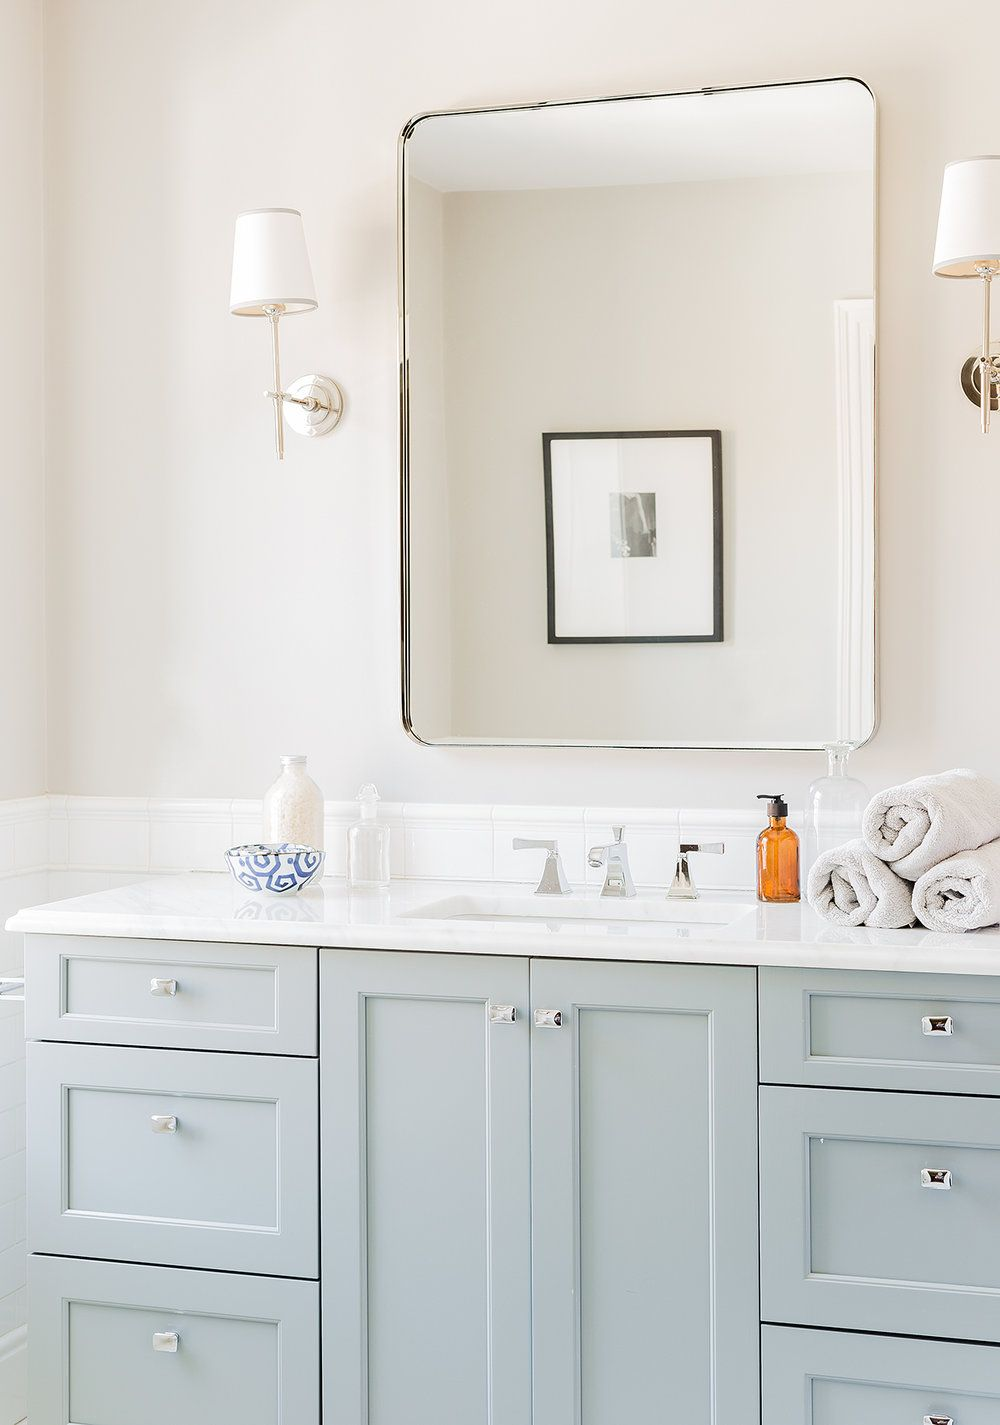 Baby blue/grey bathroom cabinets with polished nickel finishing - so ...